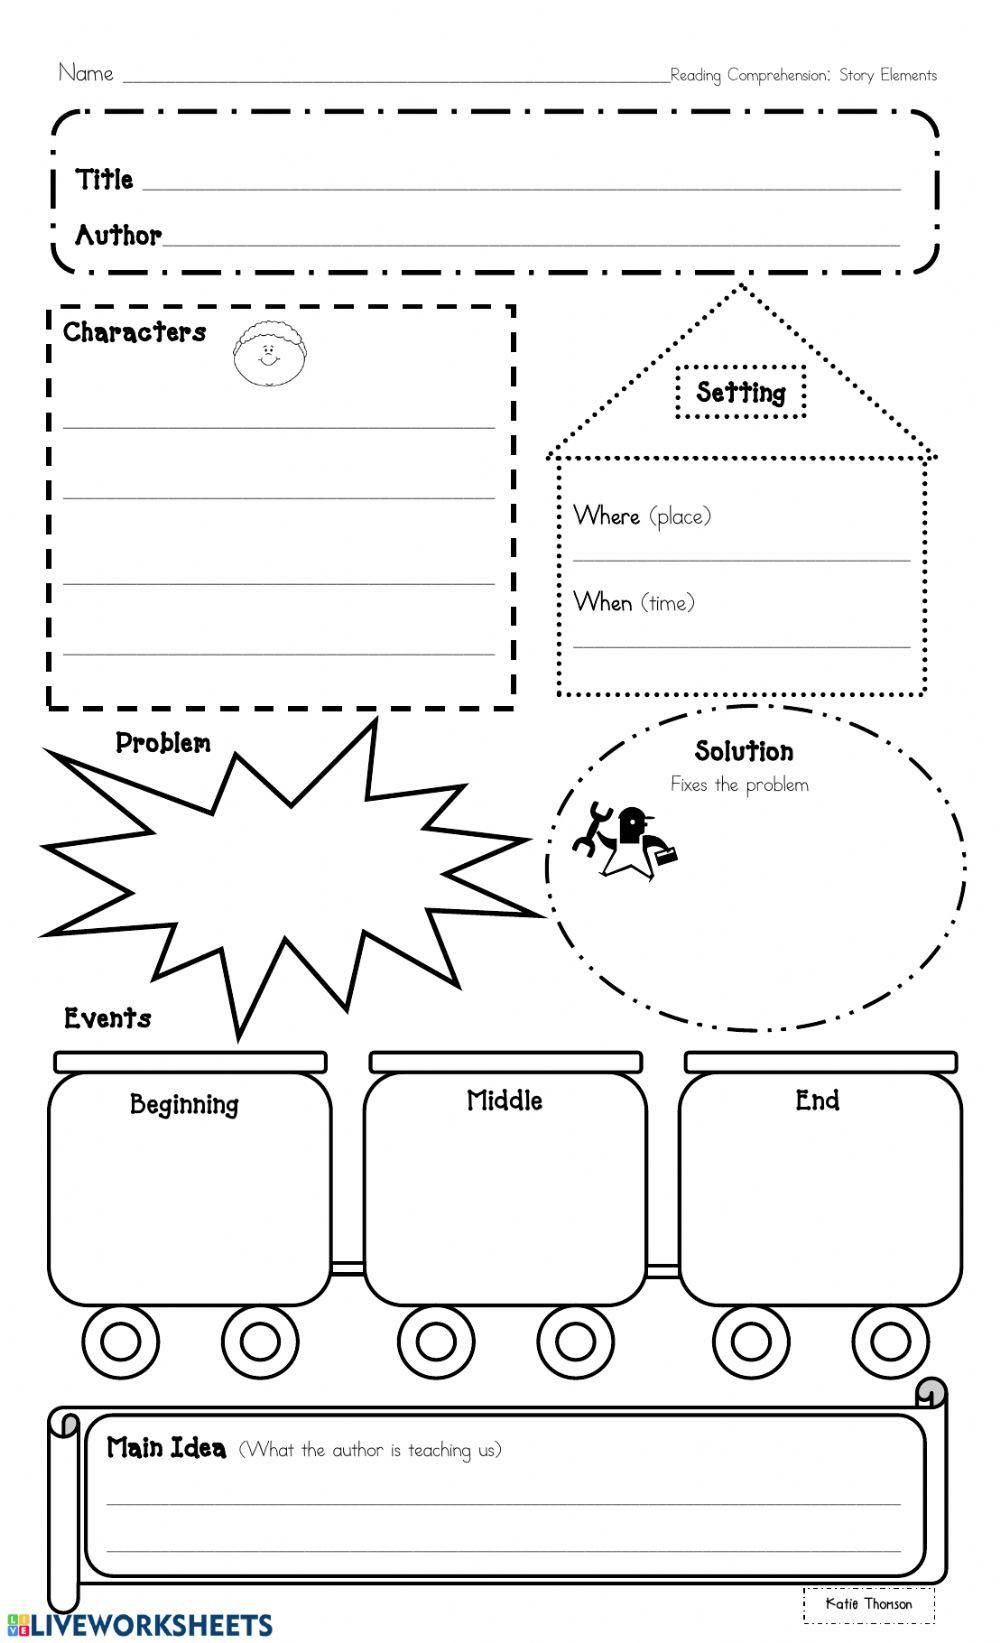 Elements Of A Story Worksheet Thinking within the Text Graphic organizer Interactive